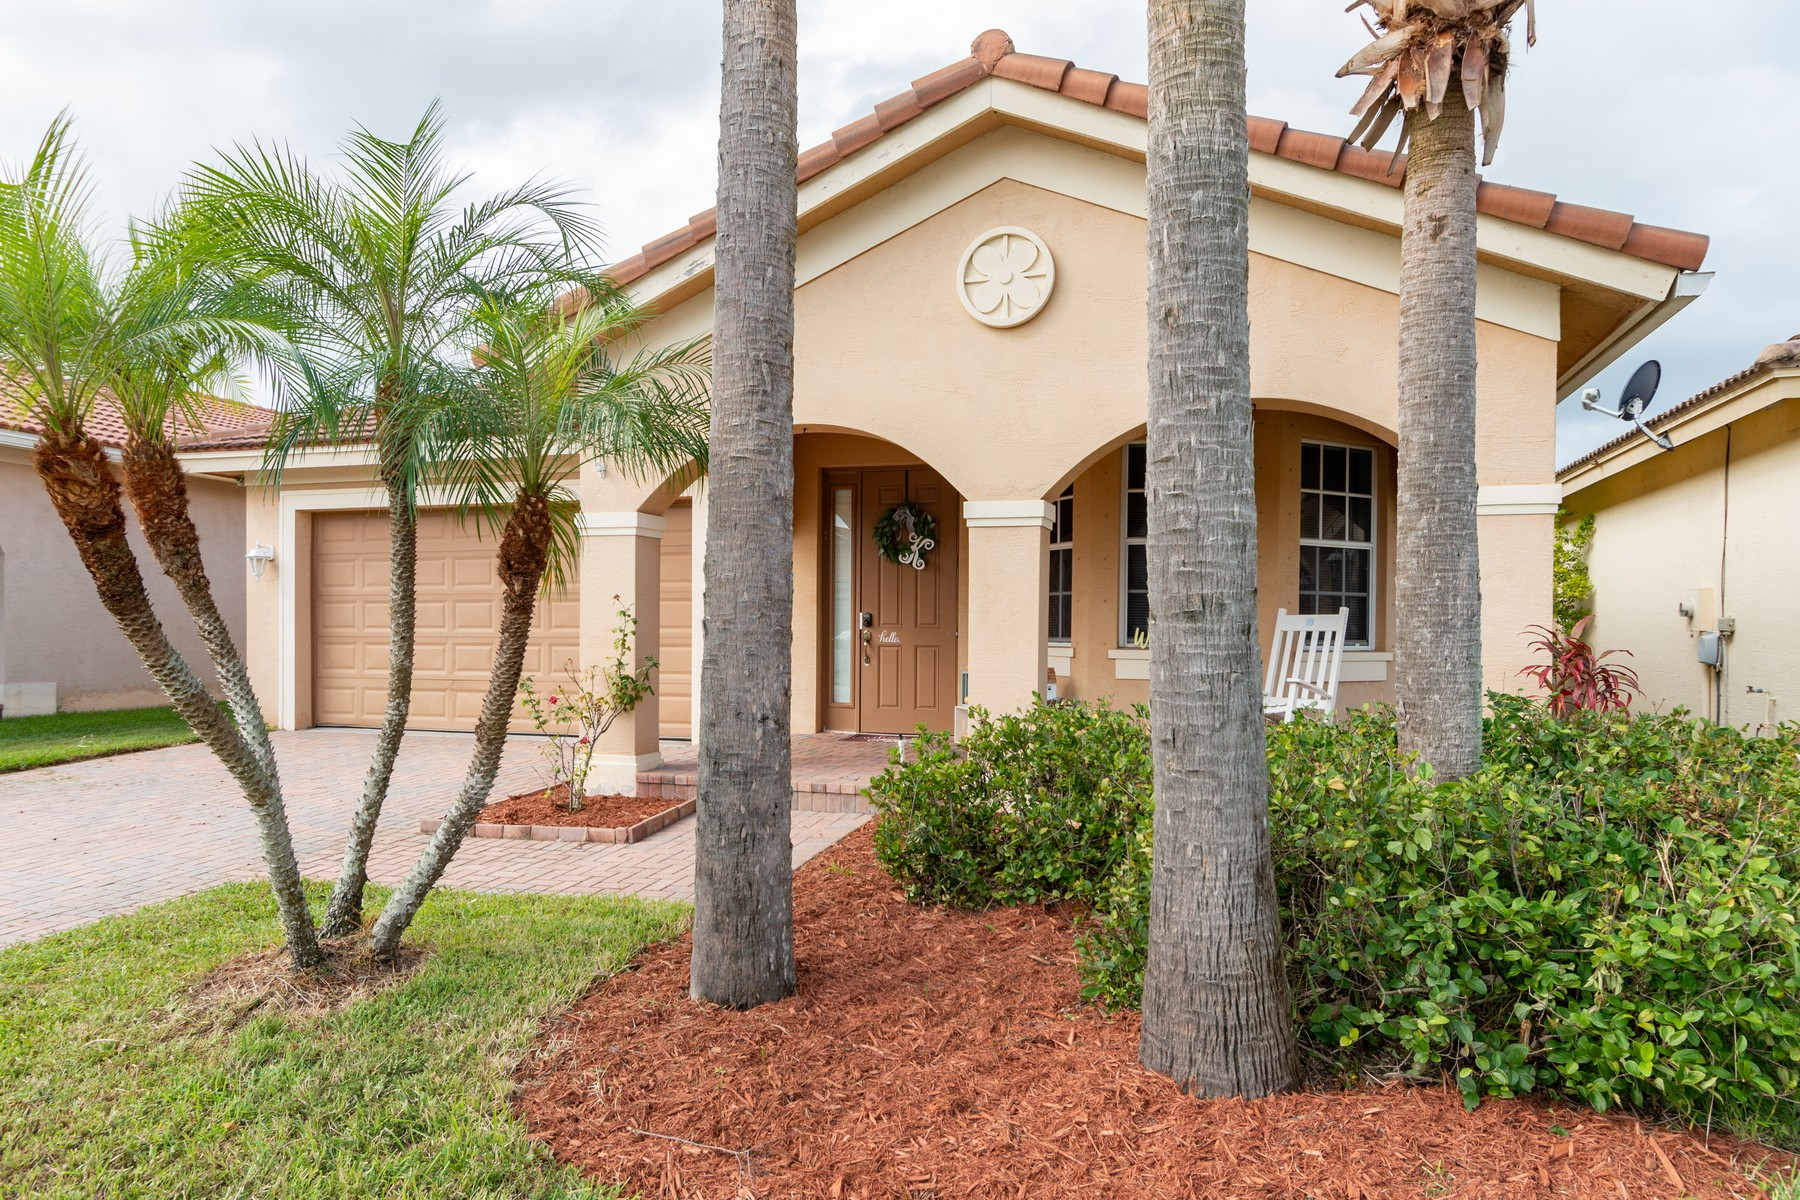 Property for Sale at Beautiful Four Bedroom Home in Desirable Neighborhood 773 Bent Creek Drive Fort Pierce, Florida 34947 United States